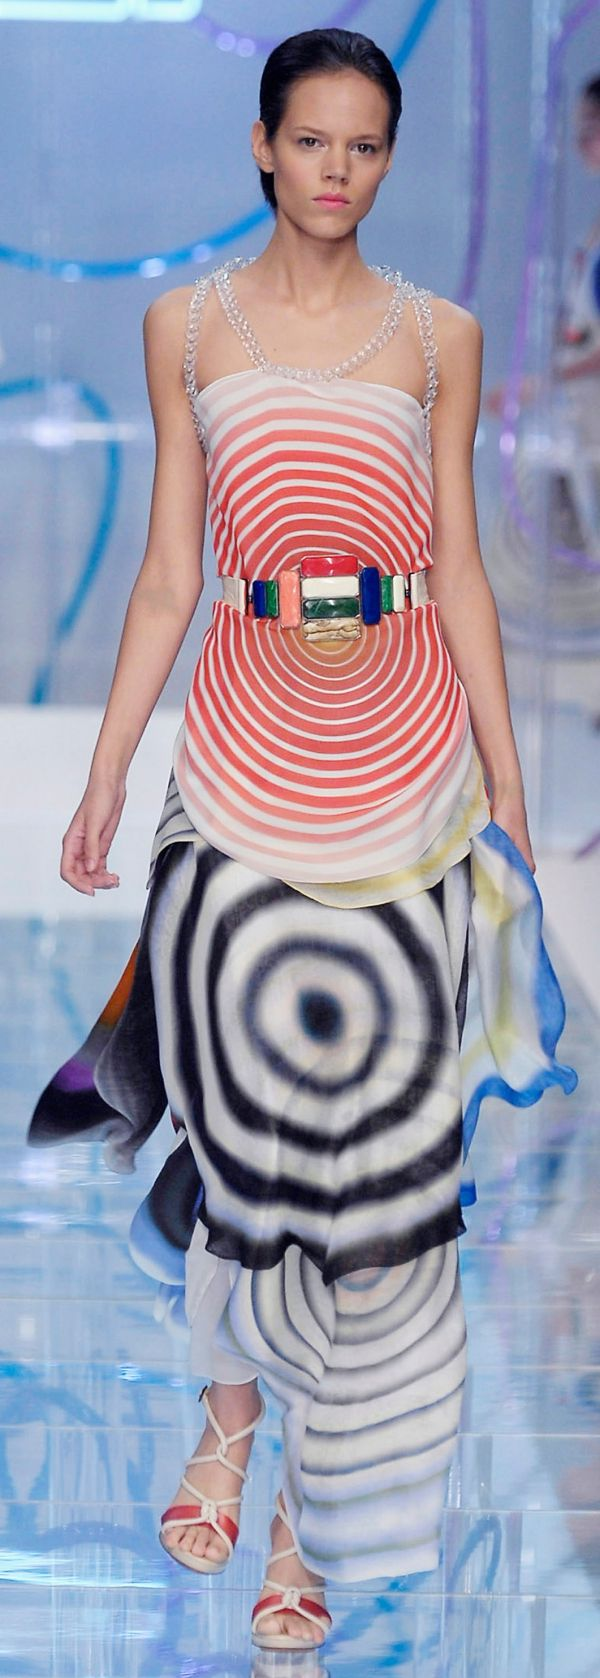 This year's summer fashion trends 2021